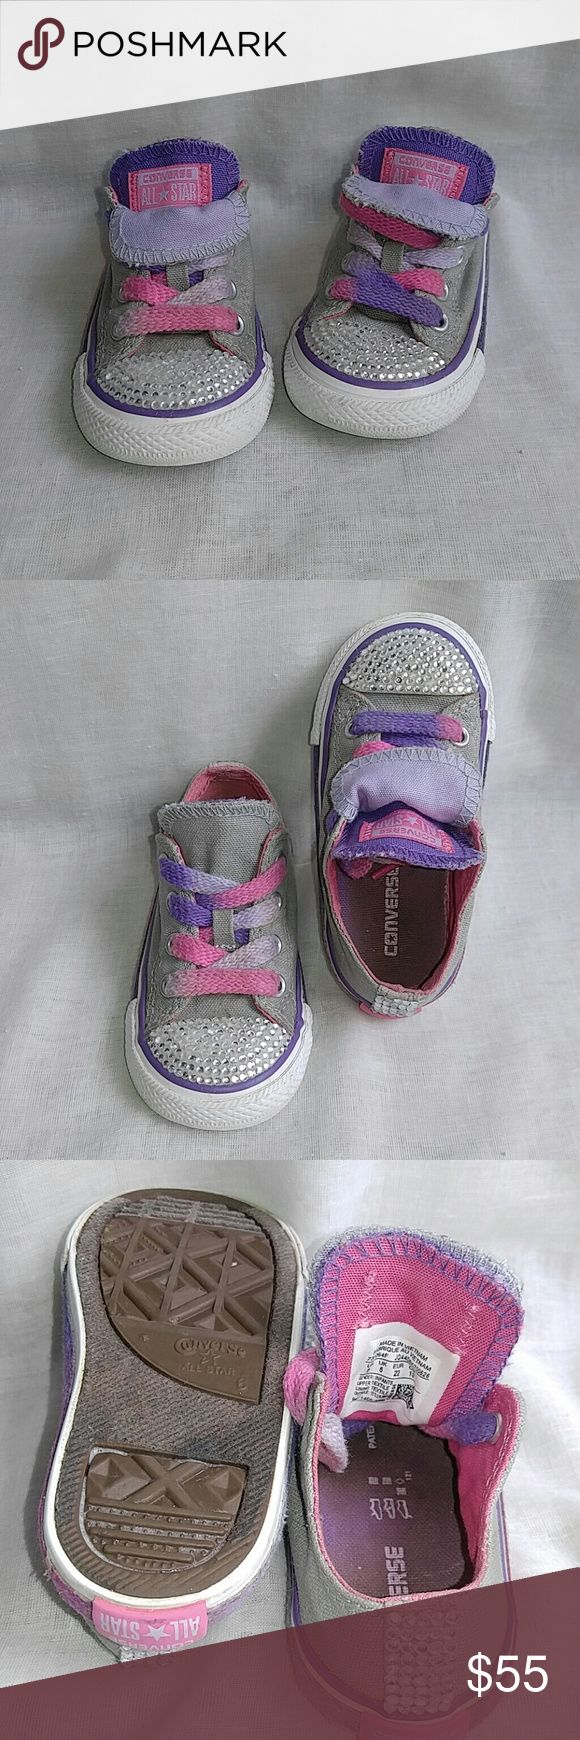 Toddler Custom Made Converse with Rhinestones I made these adorable converse all stars for my daughter's 2nd birthday. Converse Shoes Sneakers